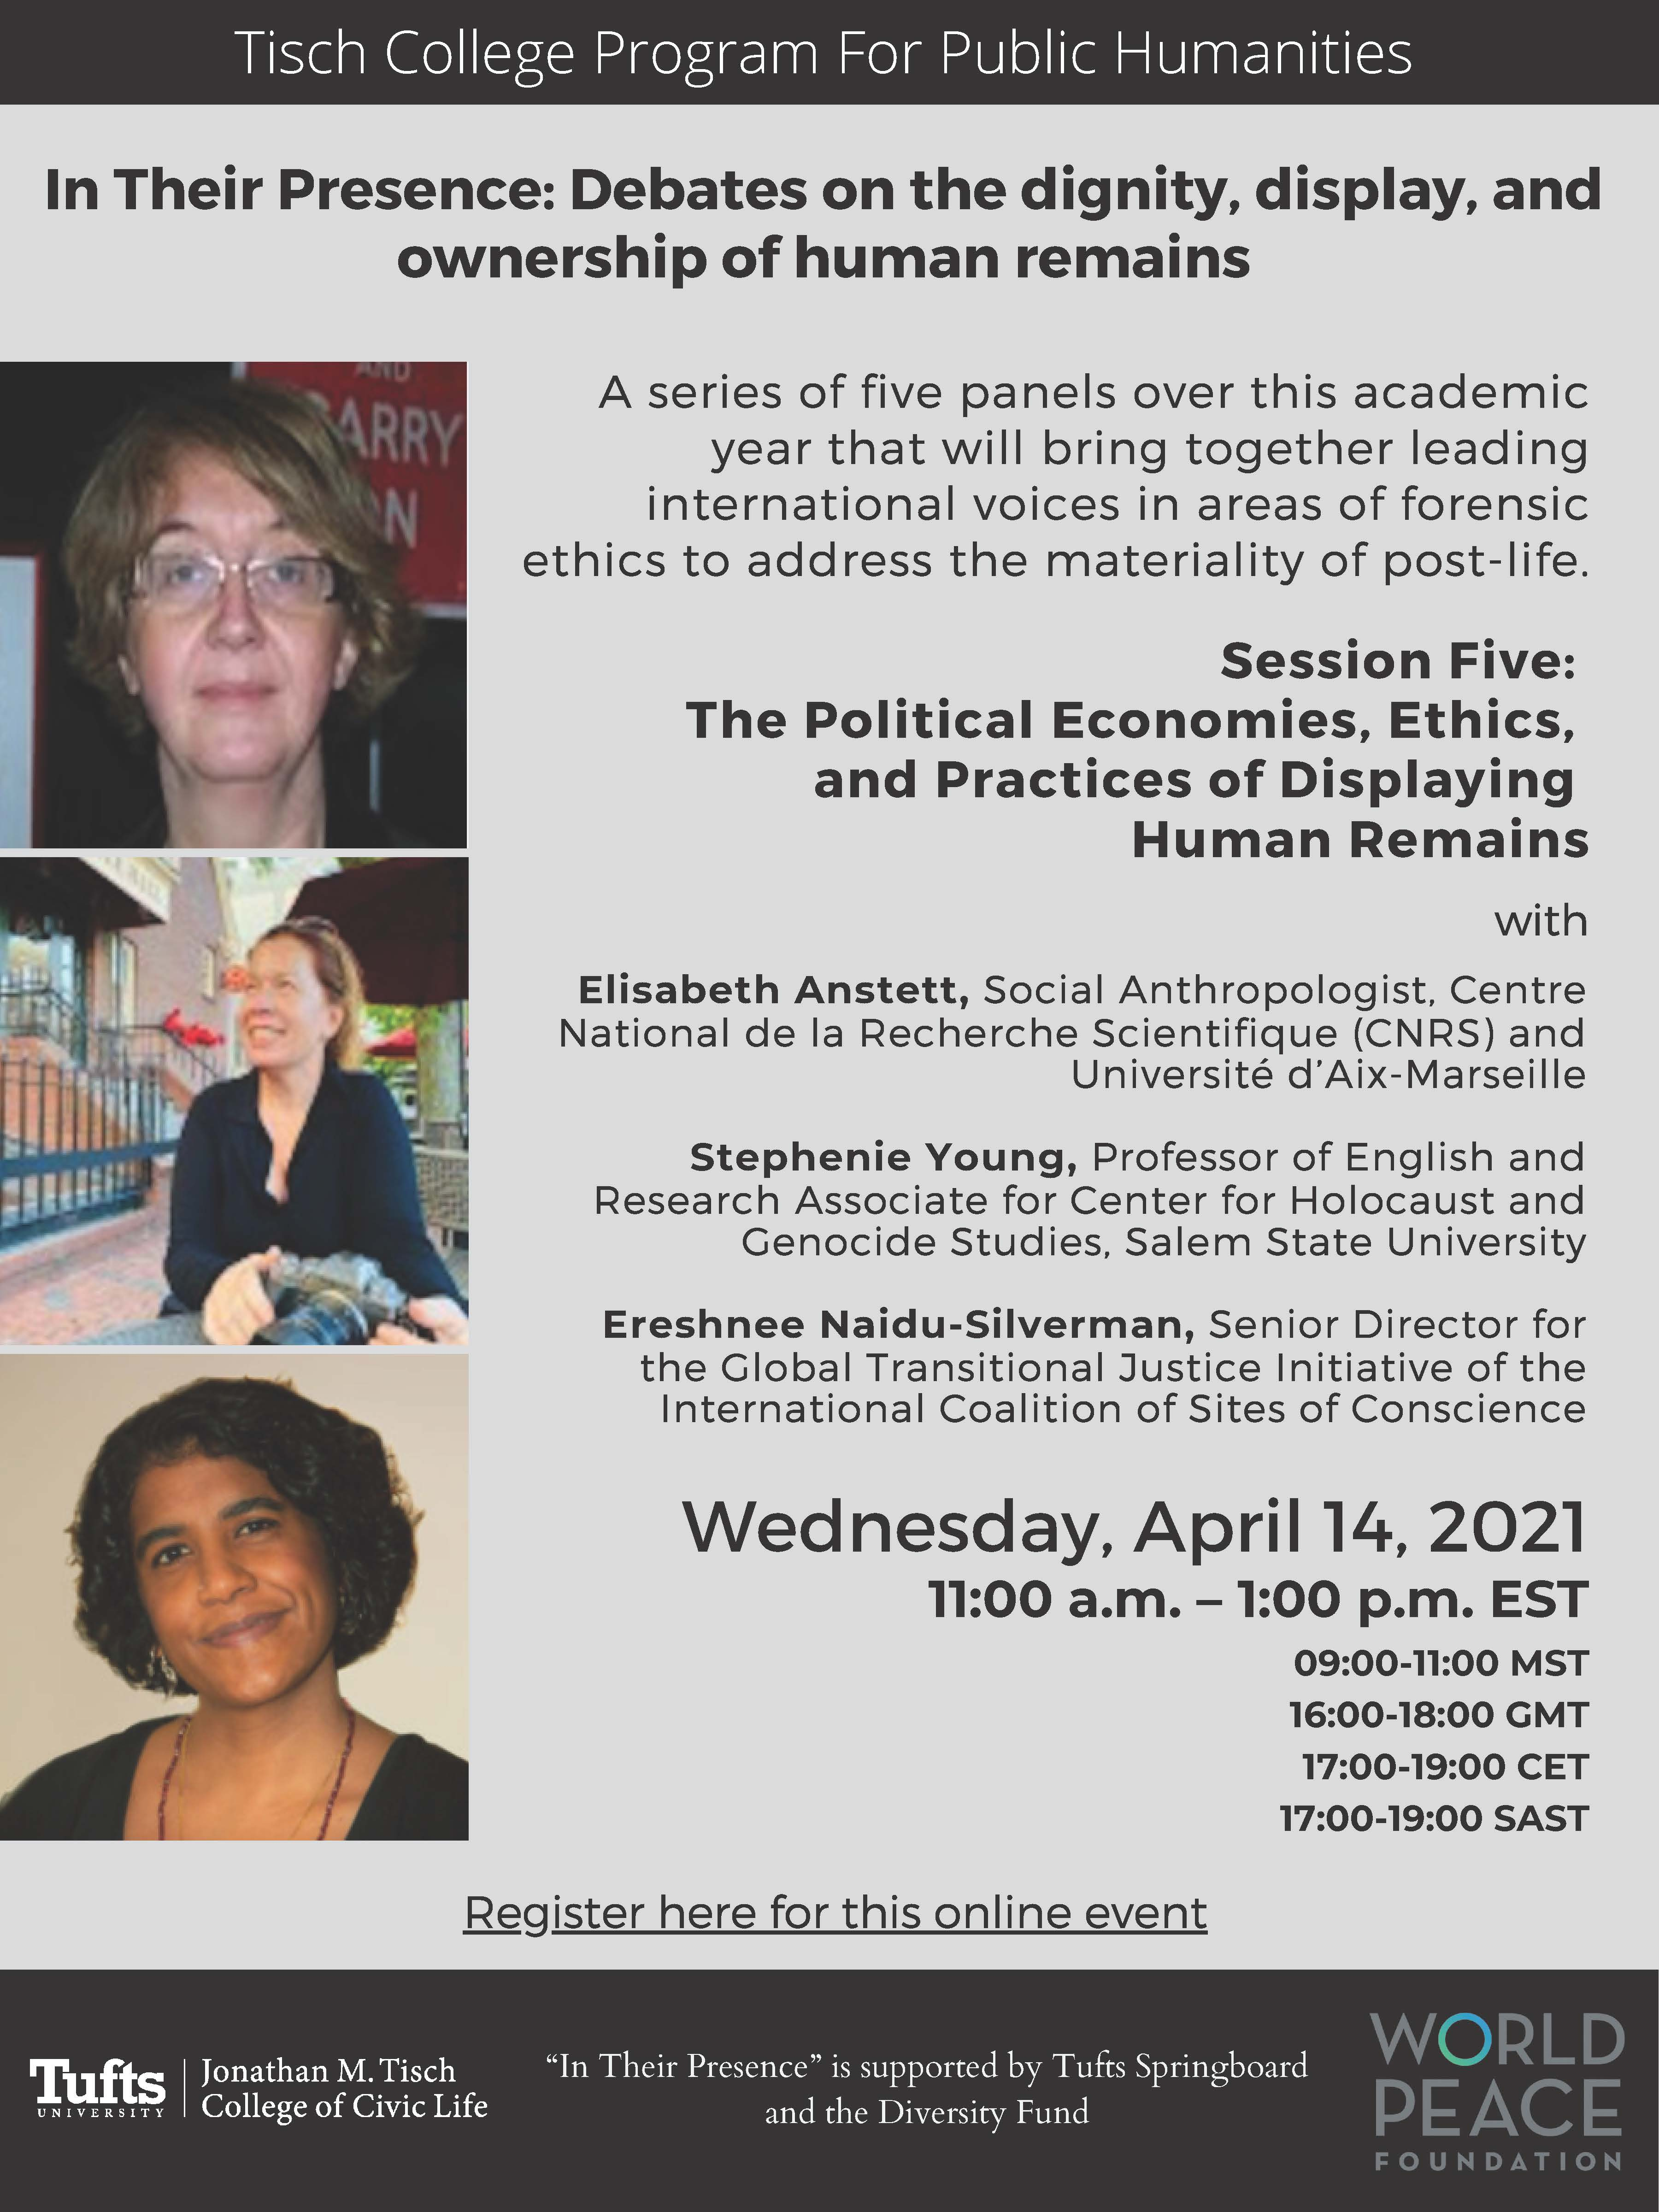 Event flyer with three photographs of people's faces